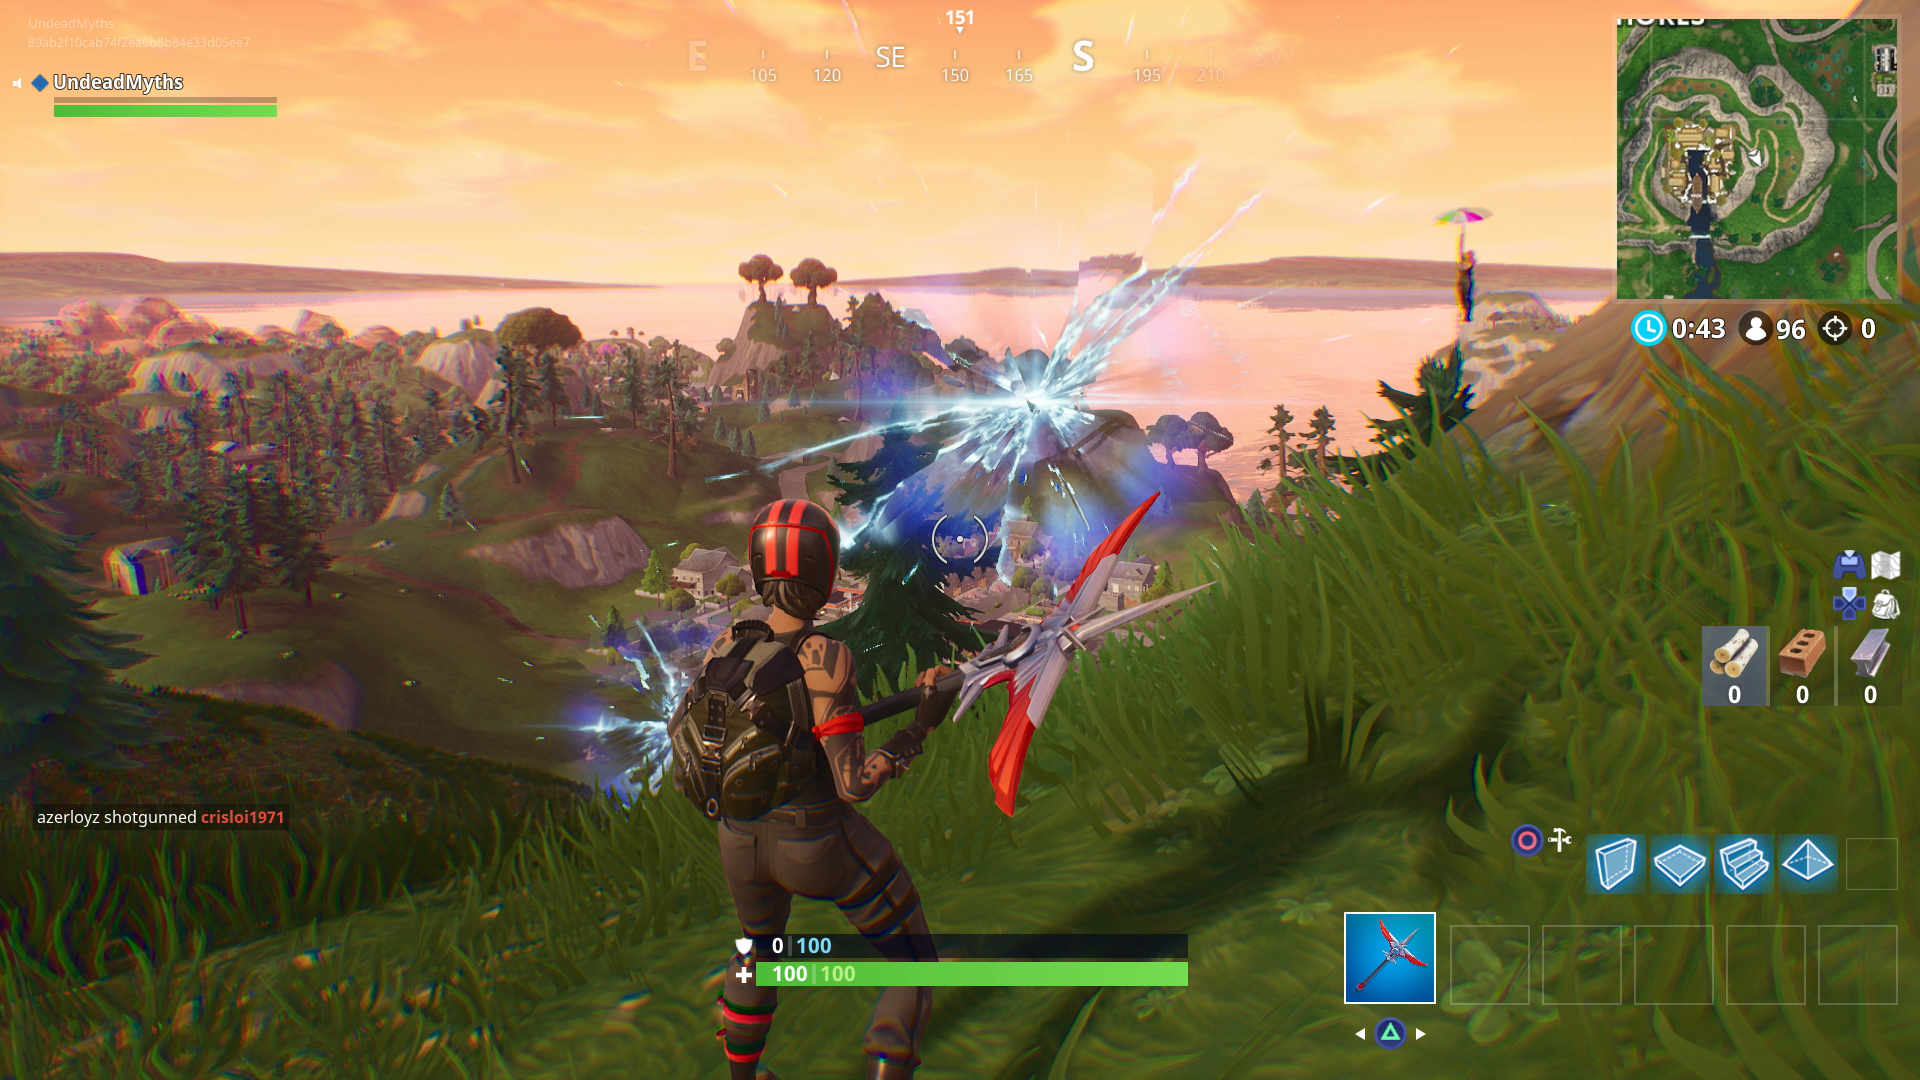 Fortnite Rift Locations Rift Spawn Locations For Fortnite - at the beginning of fortnite season 5 these rifts on the ground would swallow up objects nearby temporarily transporting them out of the map